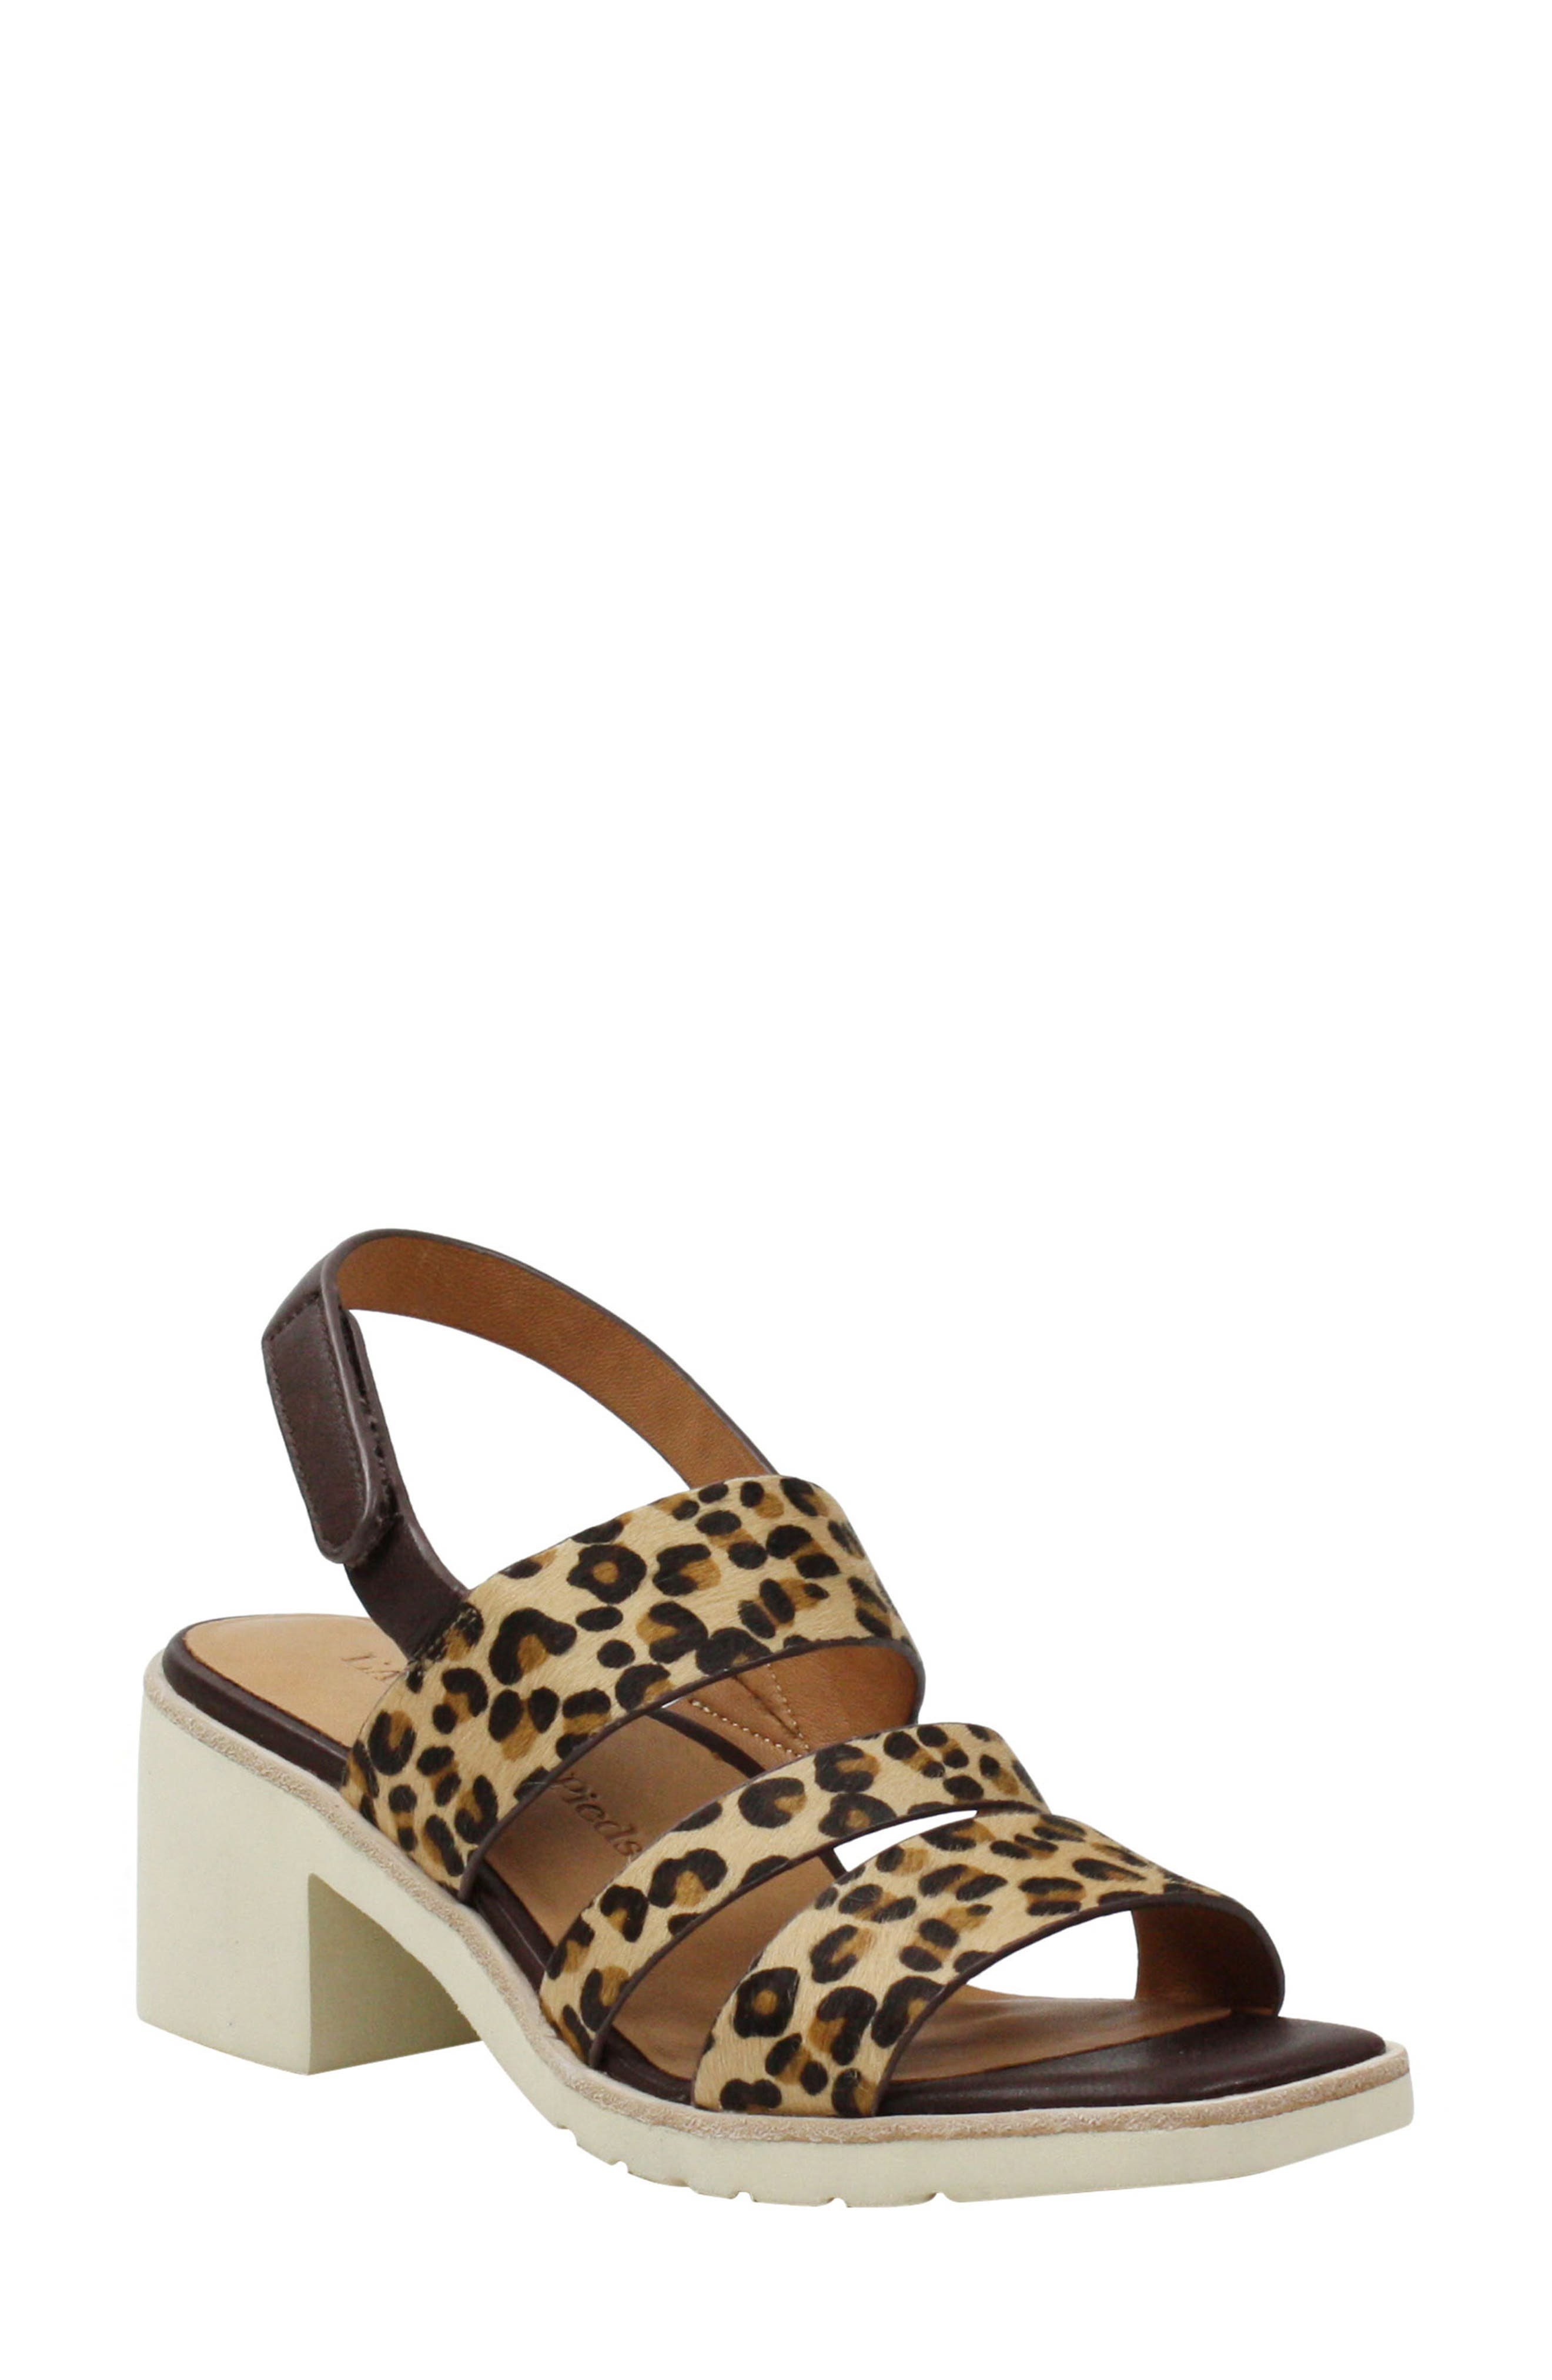 Quennell Slingback Sandal